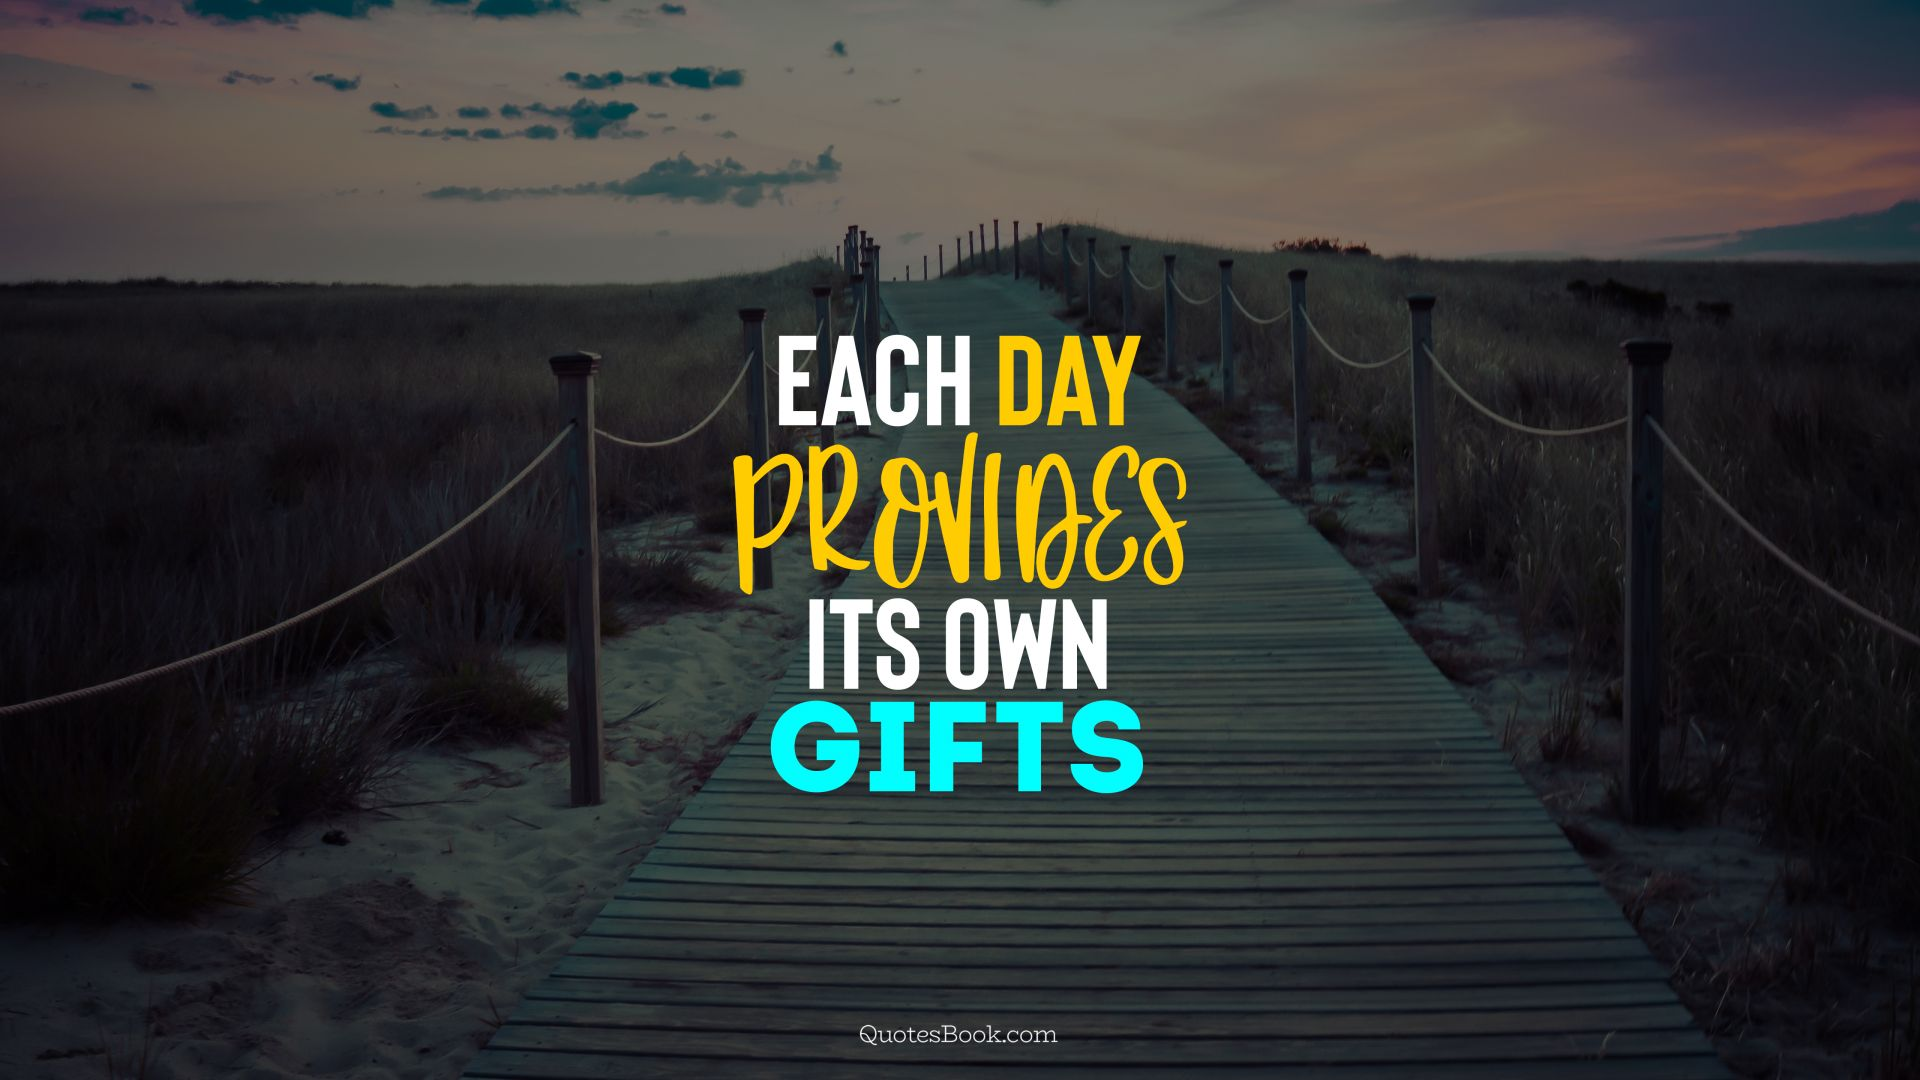 Each day provides its own gifts